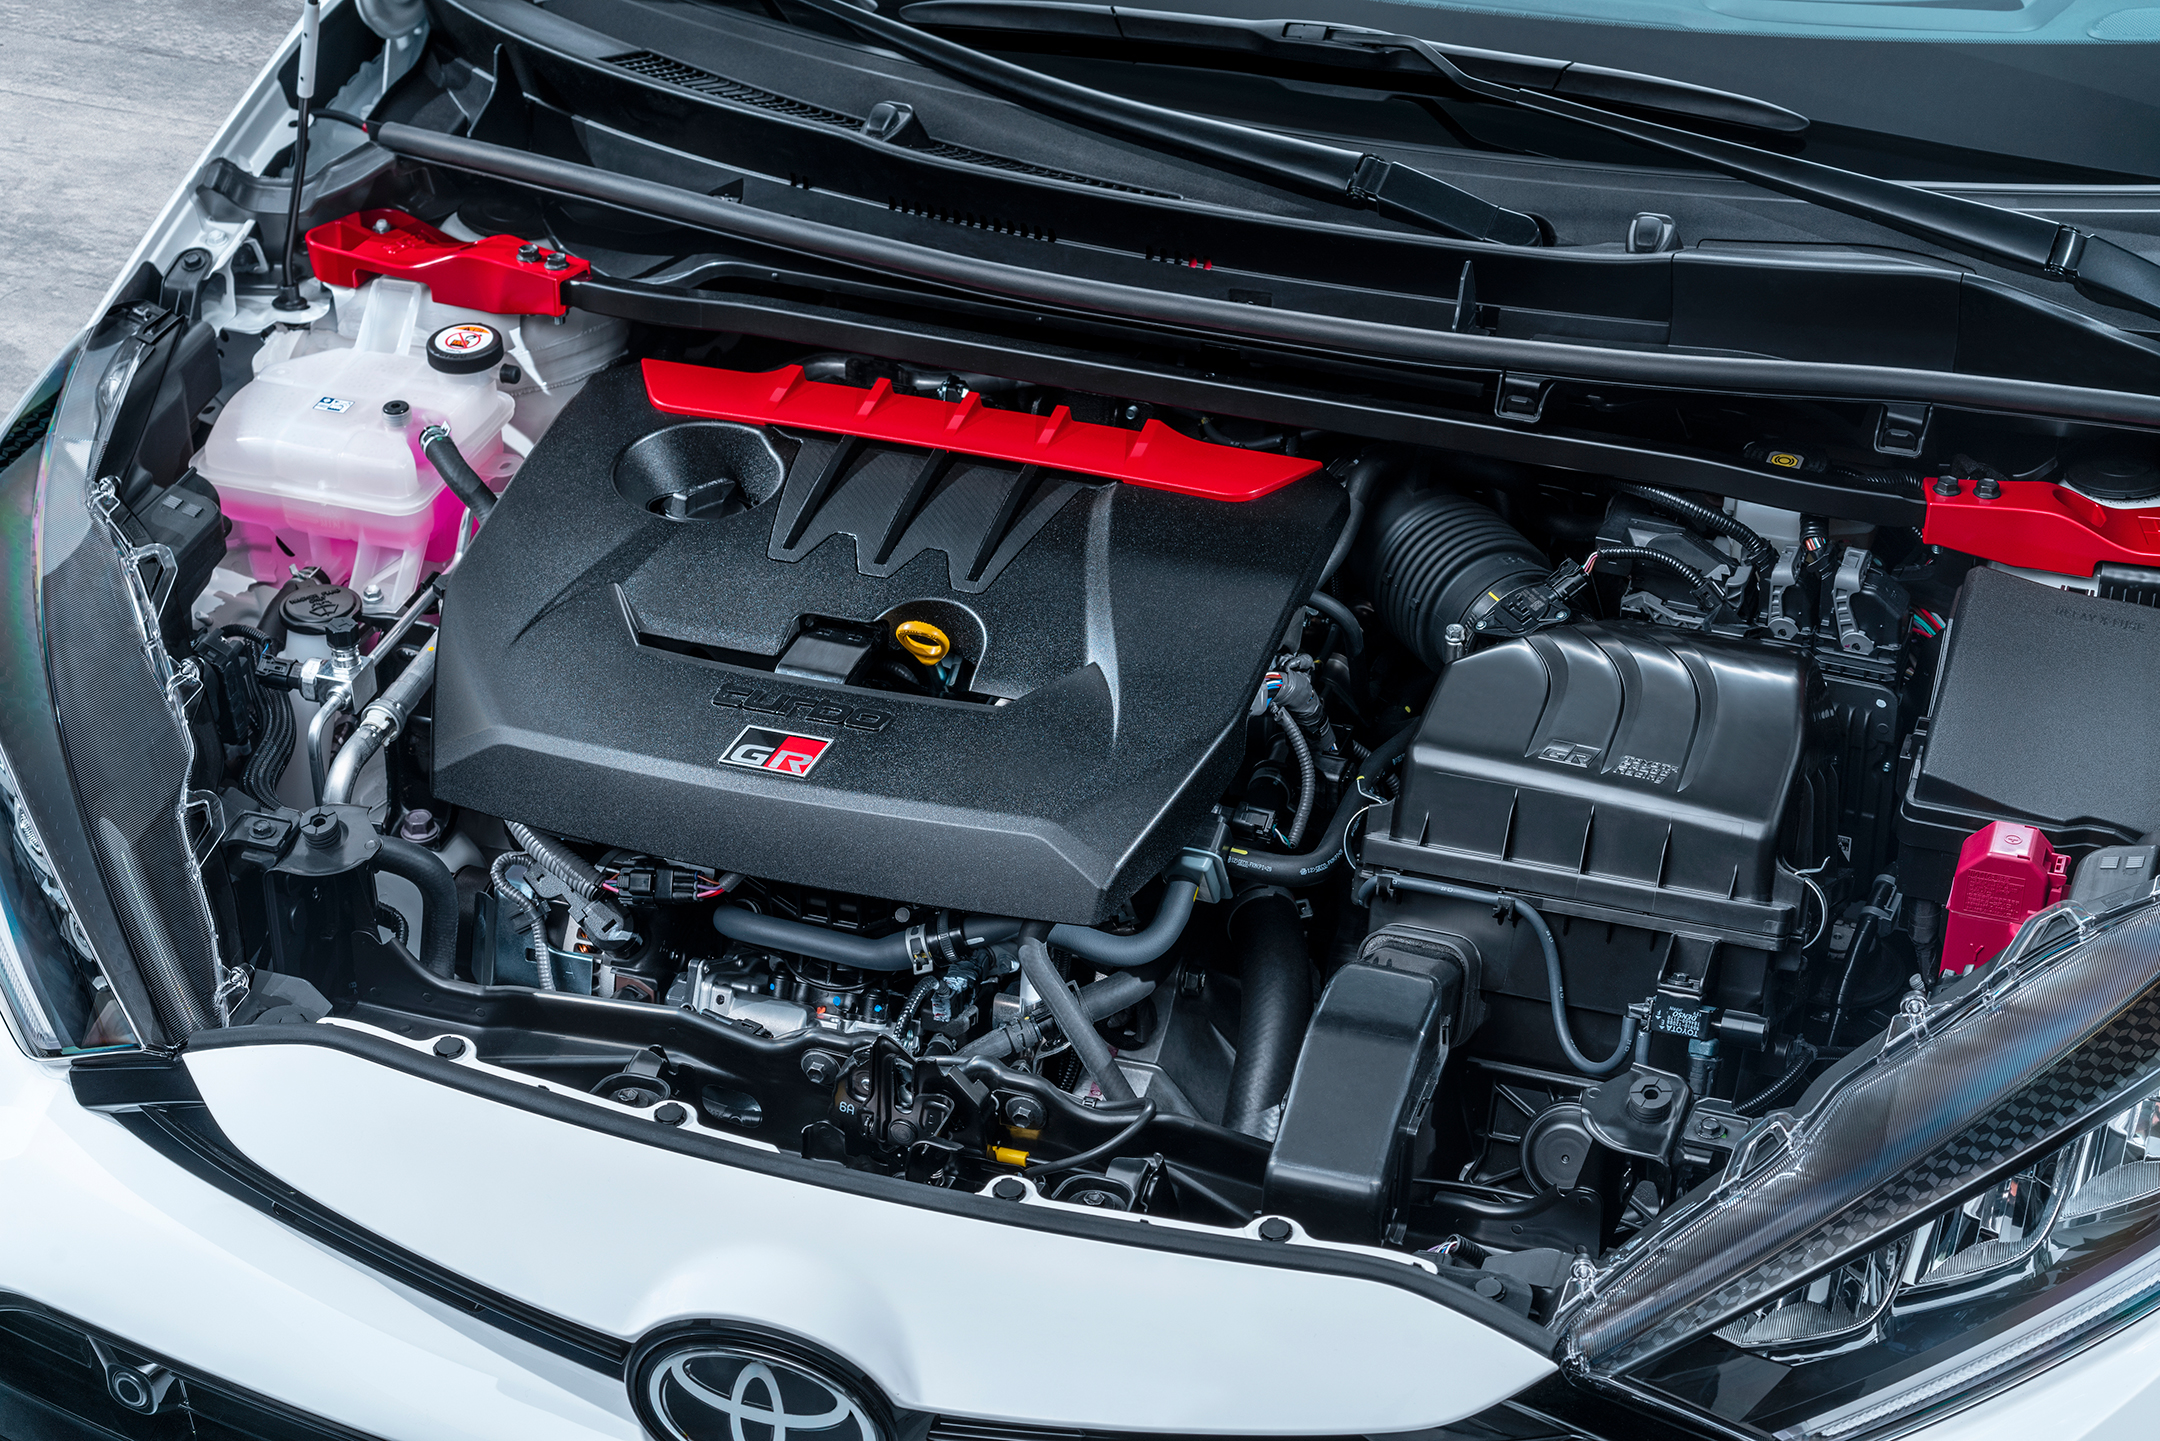 Toyota GR Yaris - 2020 - engine / moteur - under the hood